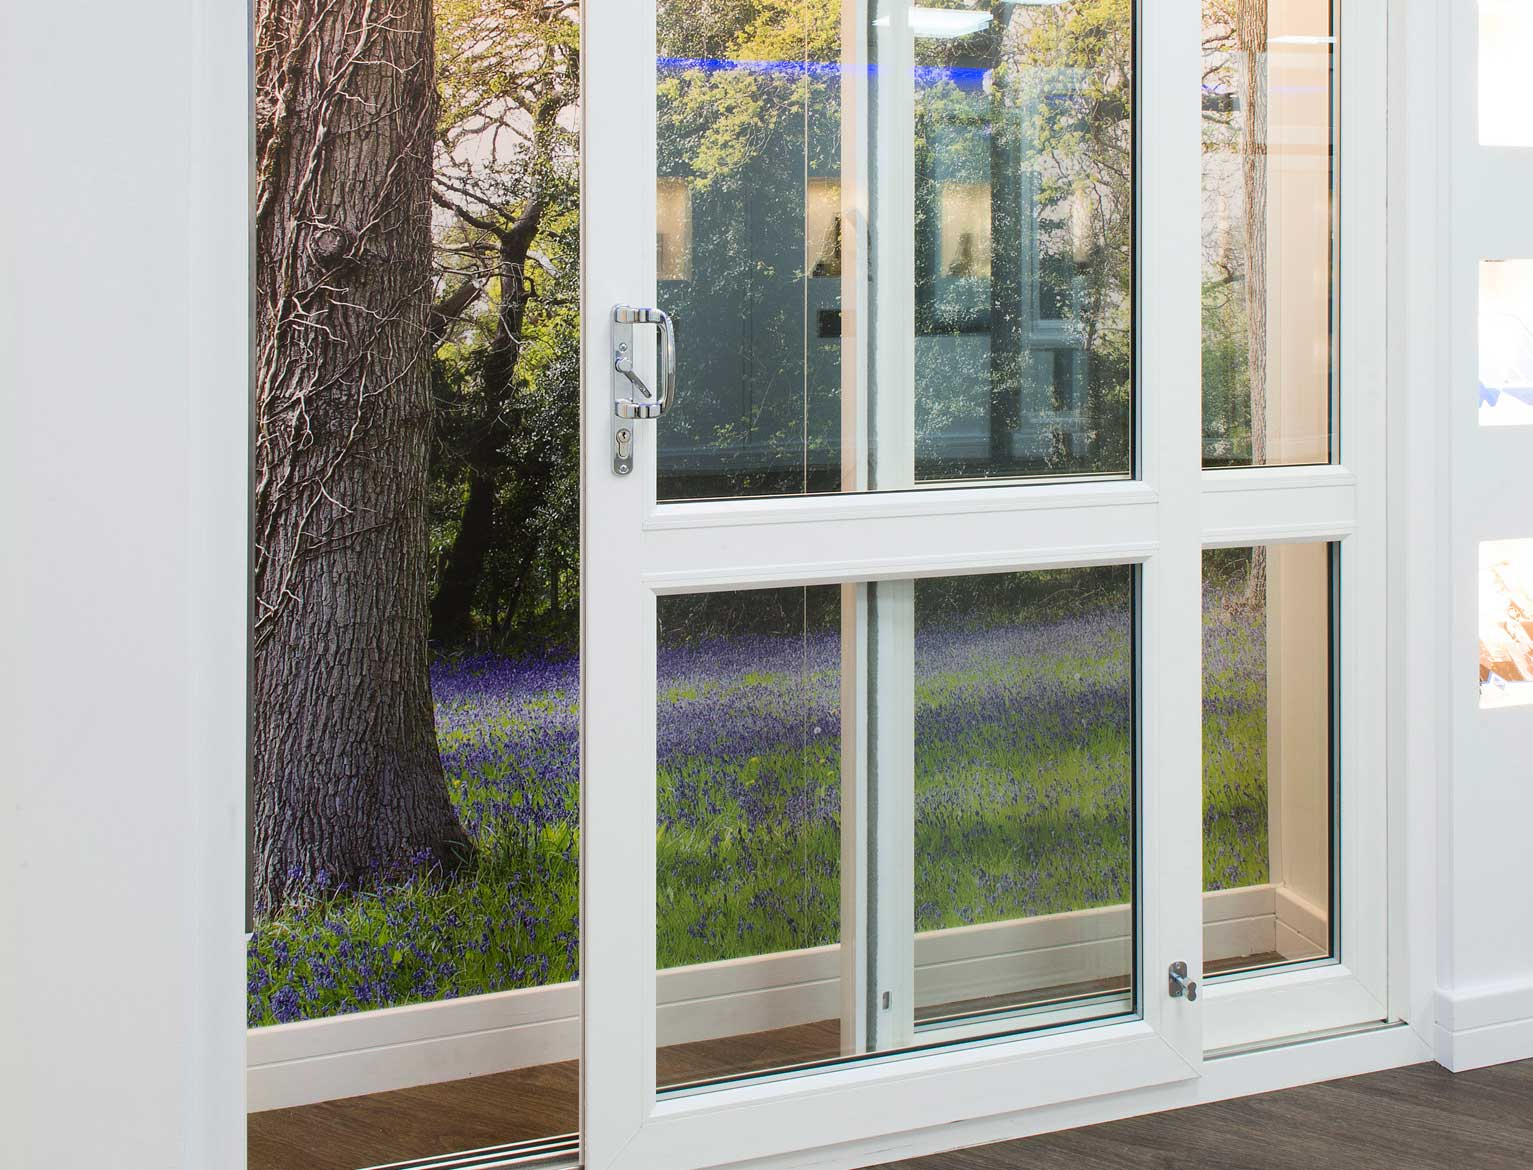 Upvc patio doors kent upvc patio doors prices sevenoaks for Patio doors uk